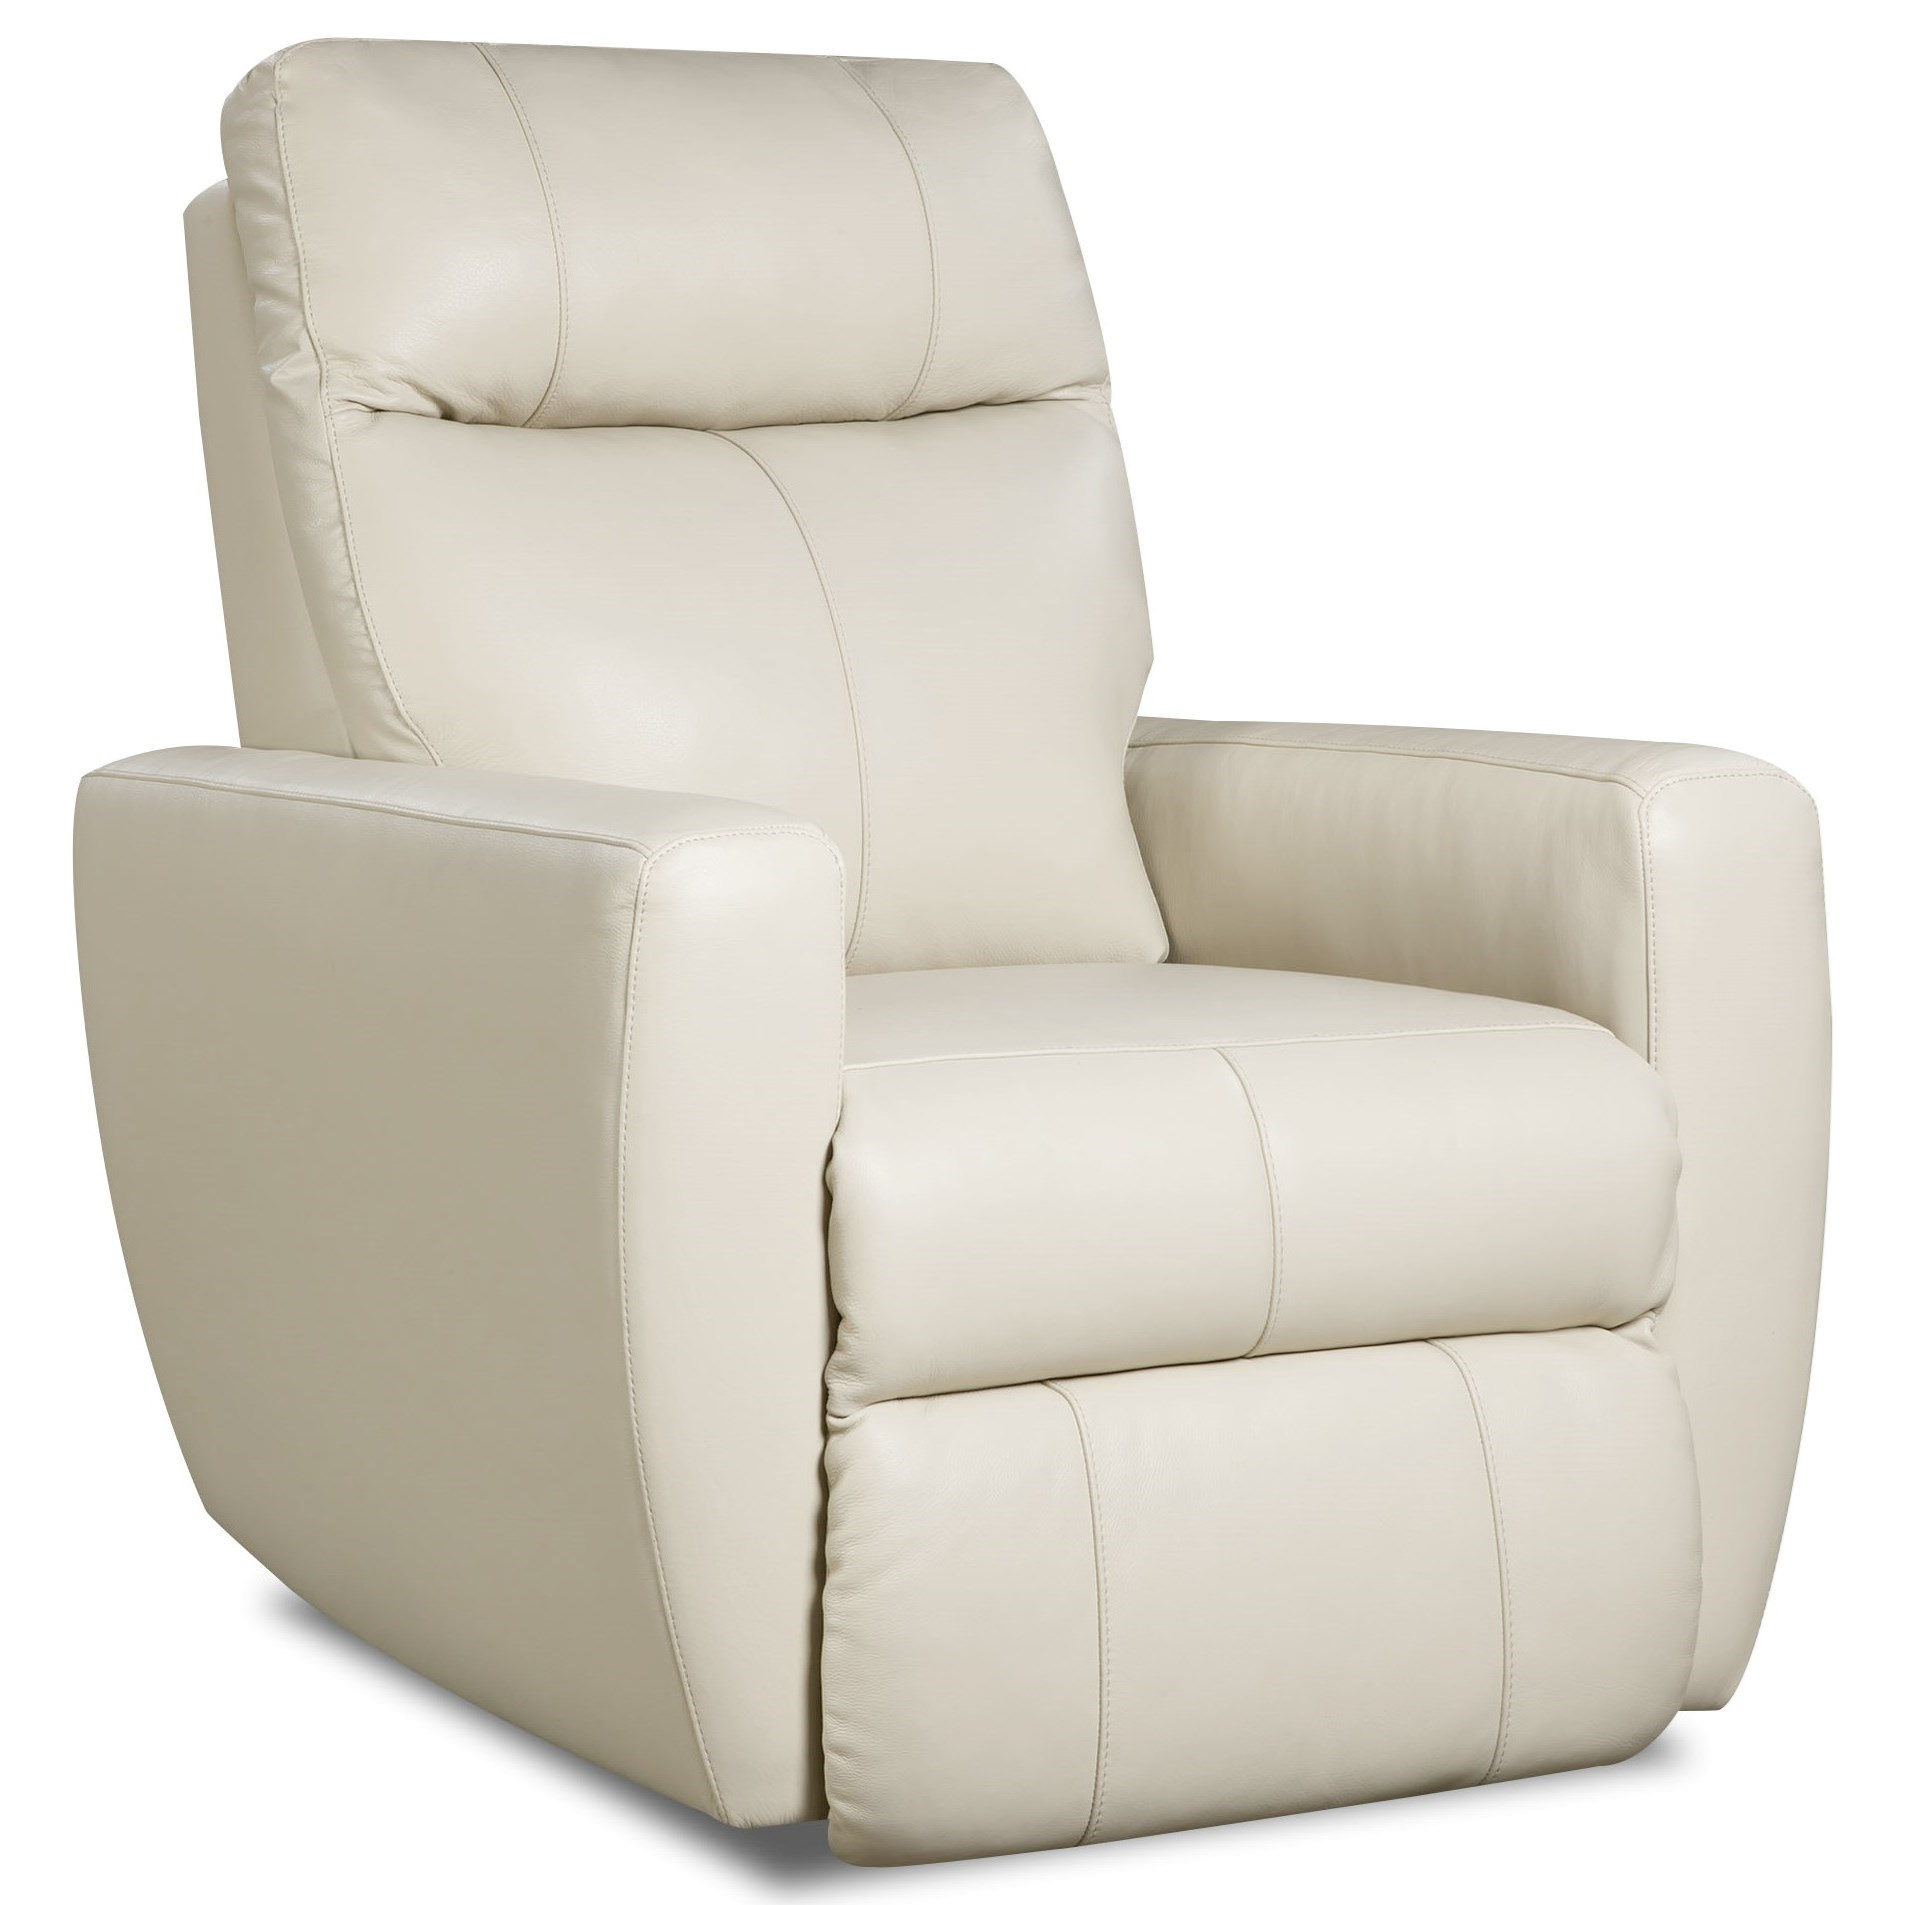 Southern Motion Knock Out 5865p Rocker Recliner With Power Headrest